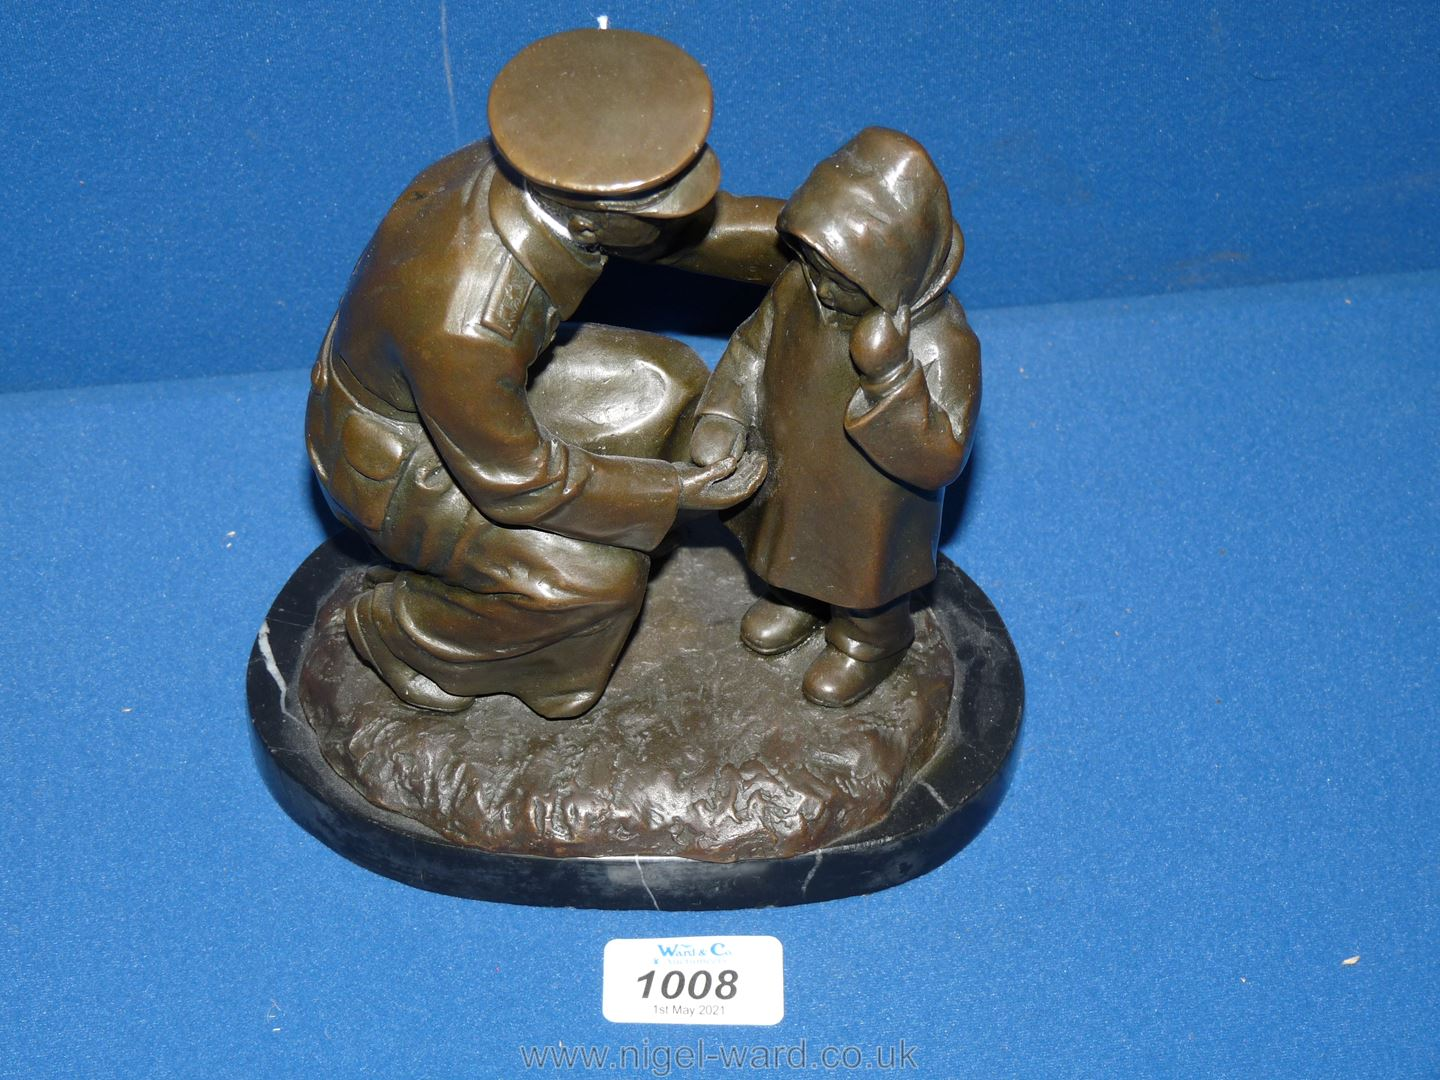 A Bronze figure of a soldier helping a young child, on marble plinth, 'H.